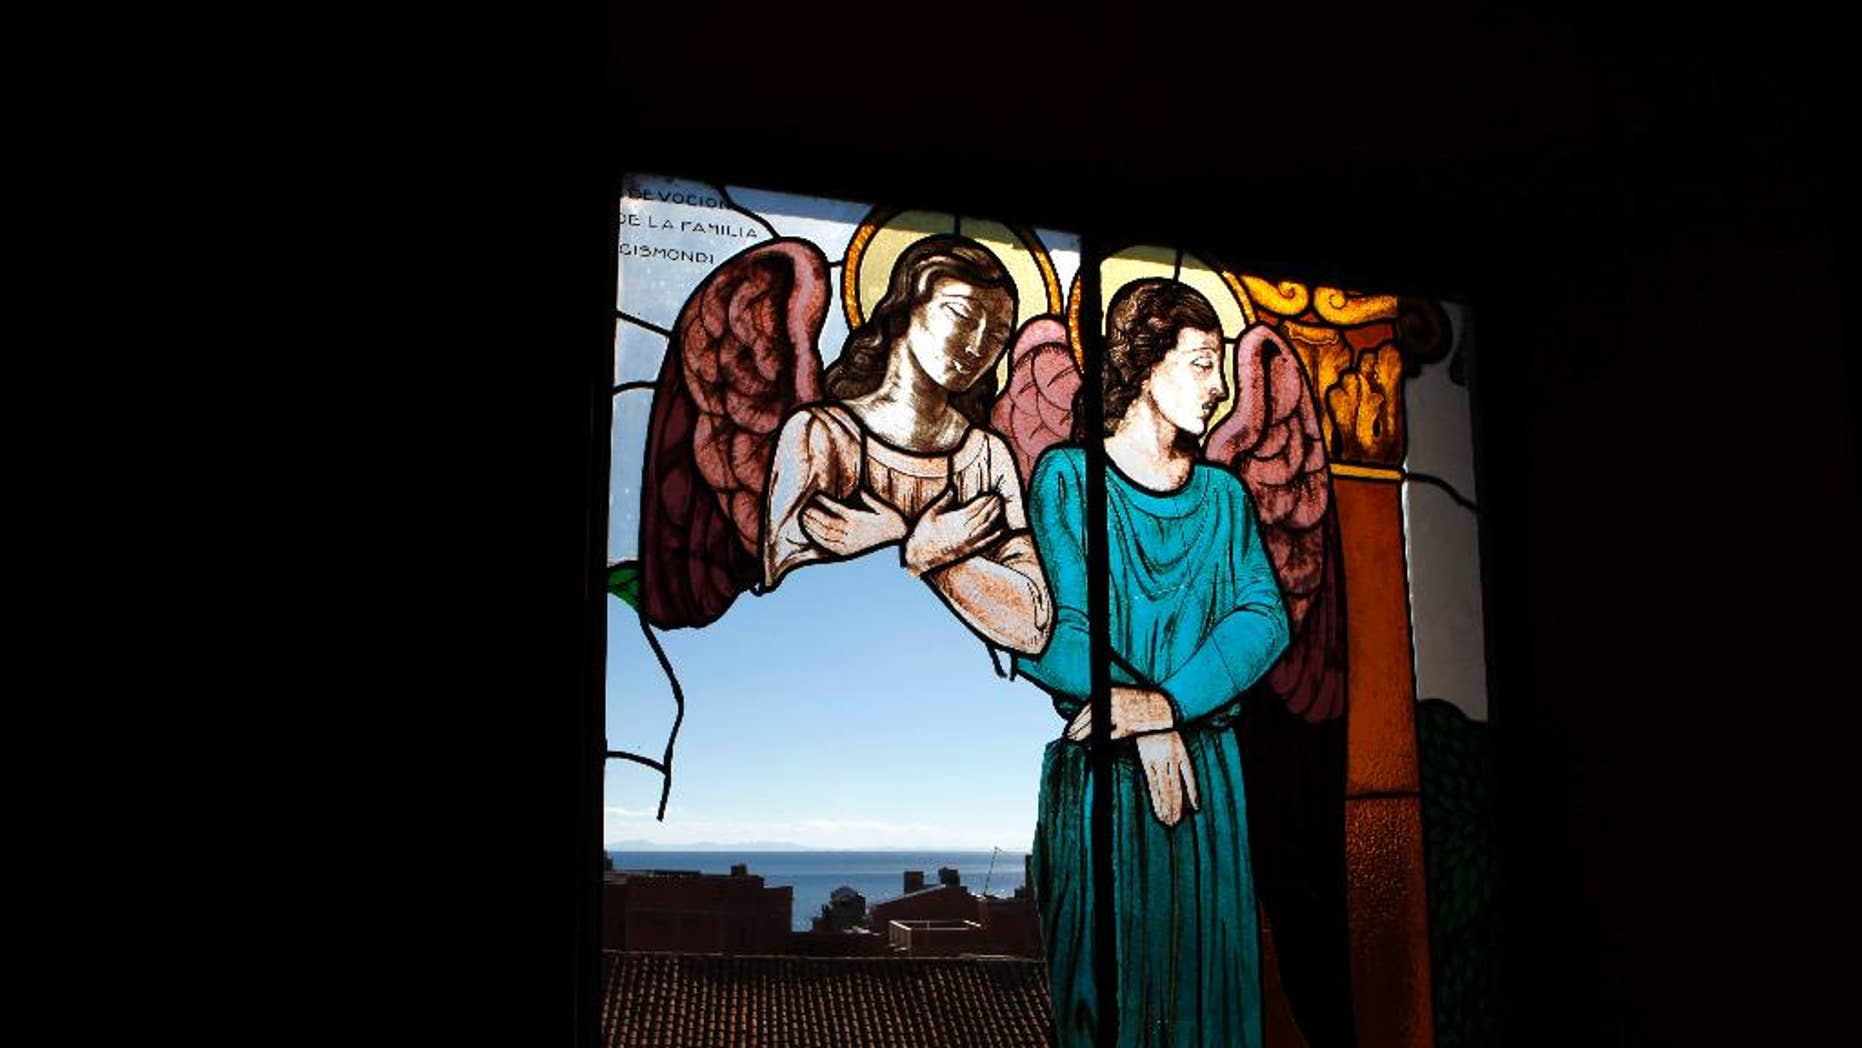 April 23, 2013: In this file photo, a stained glass window, broken by thieves according to the local priest, remains damaged at the Basilica of Our Lady of Copacabana in Copacabana, Bolivia. (AP)